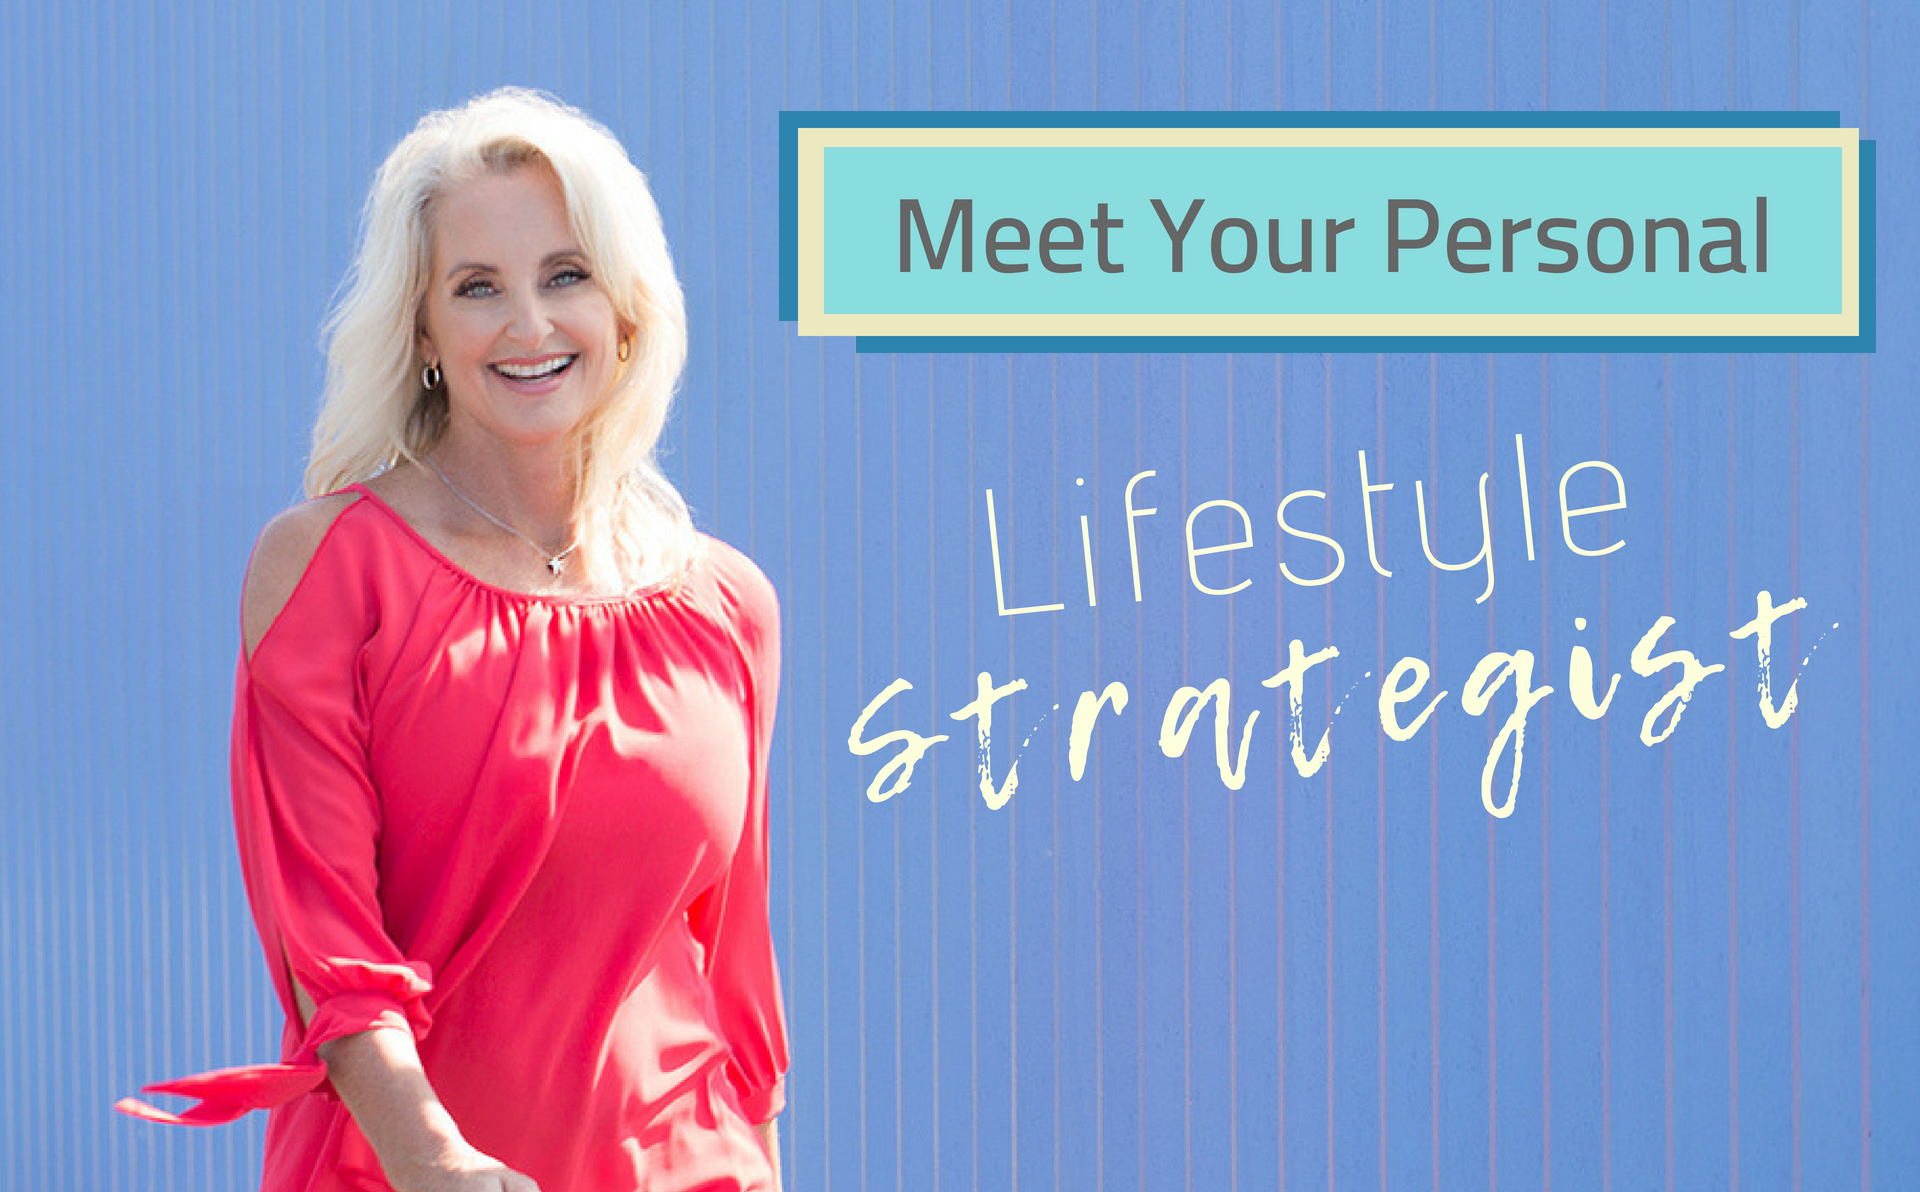 Meet Your personal Lifestyle Strategist